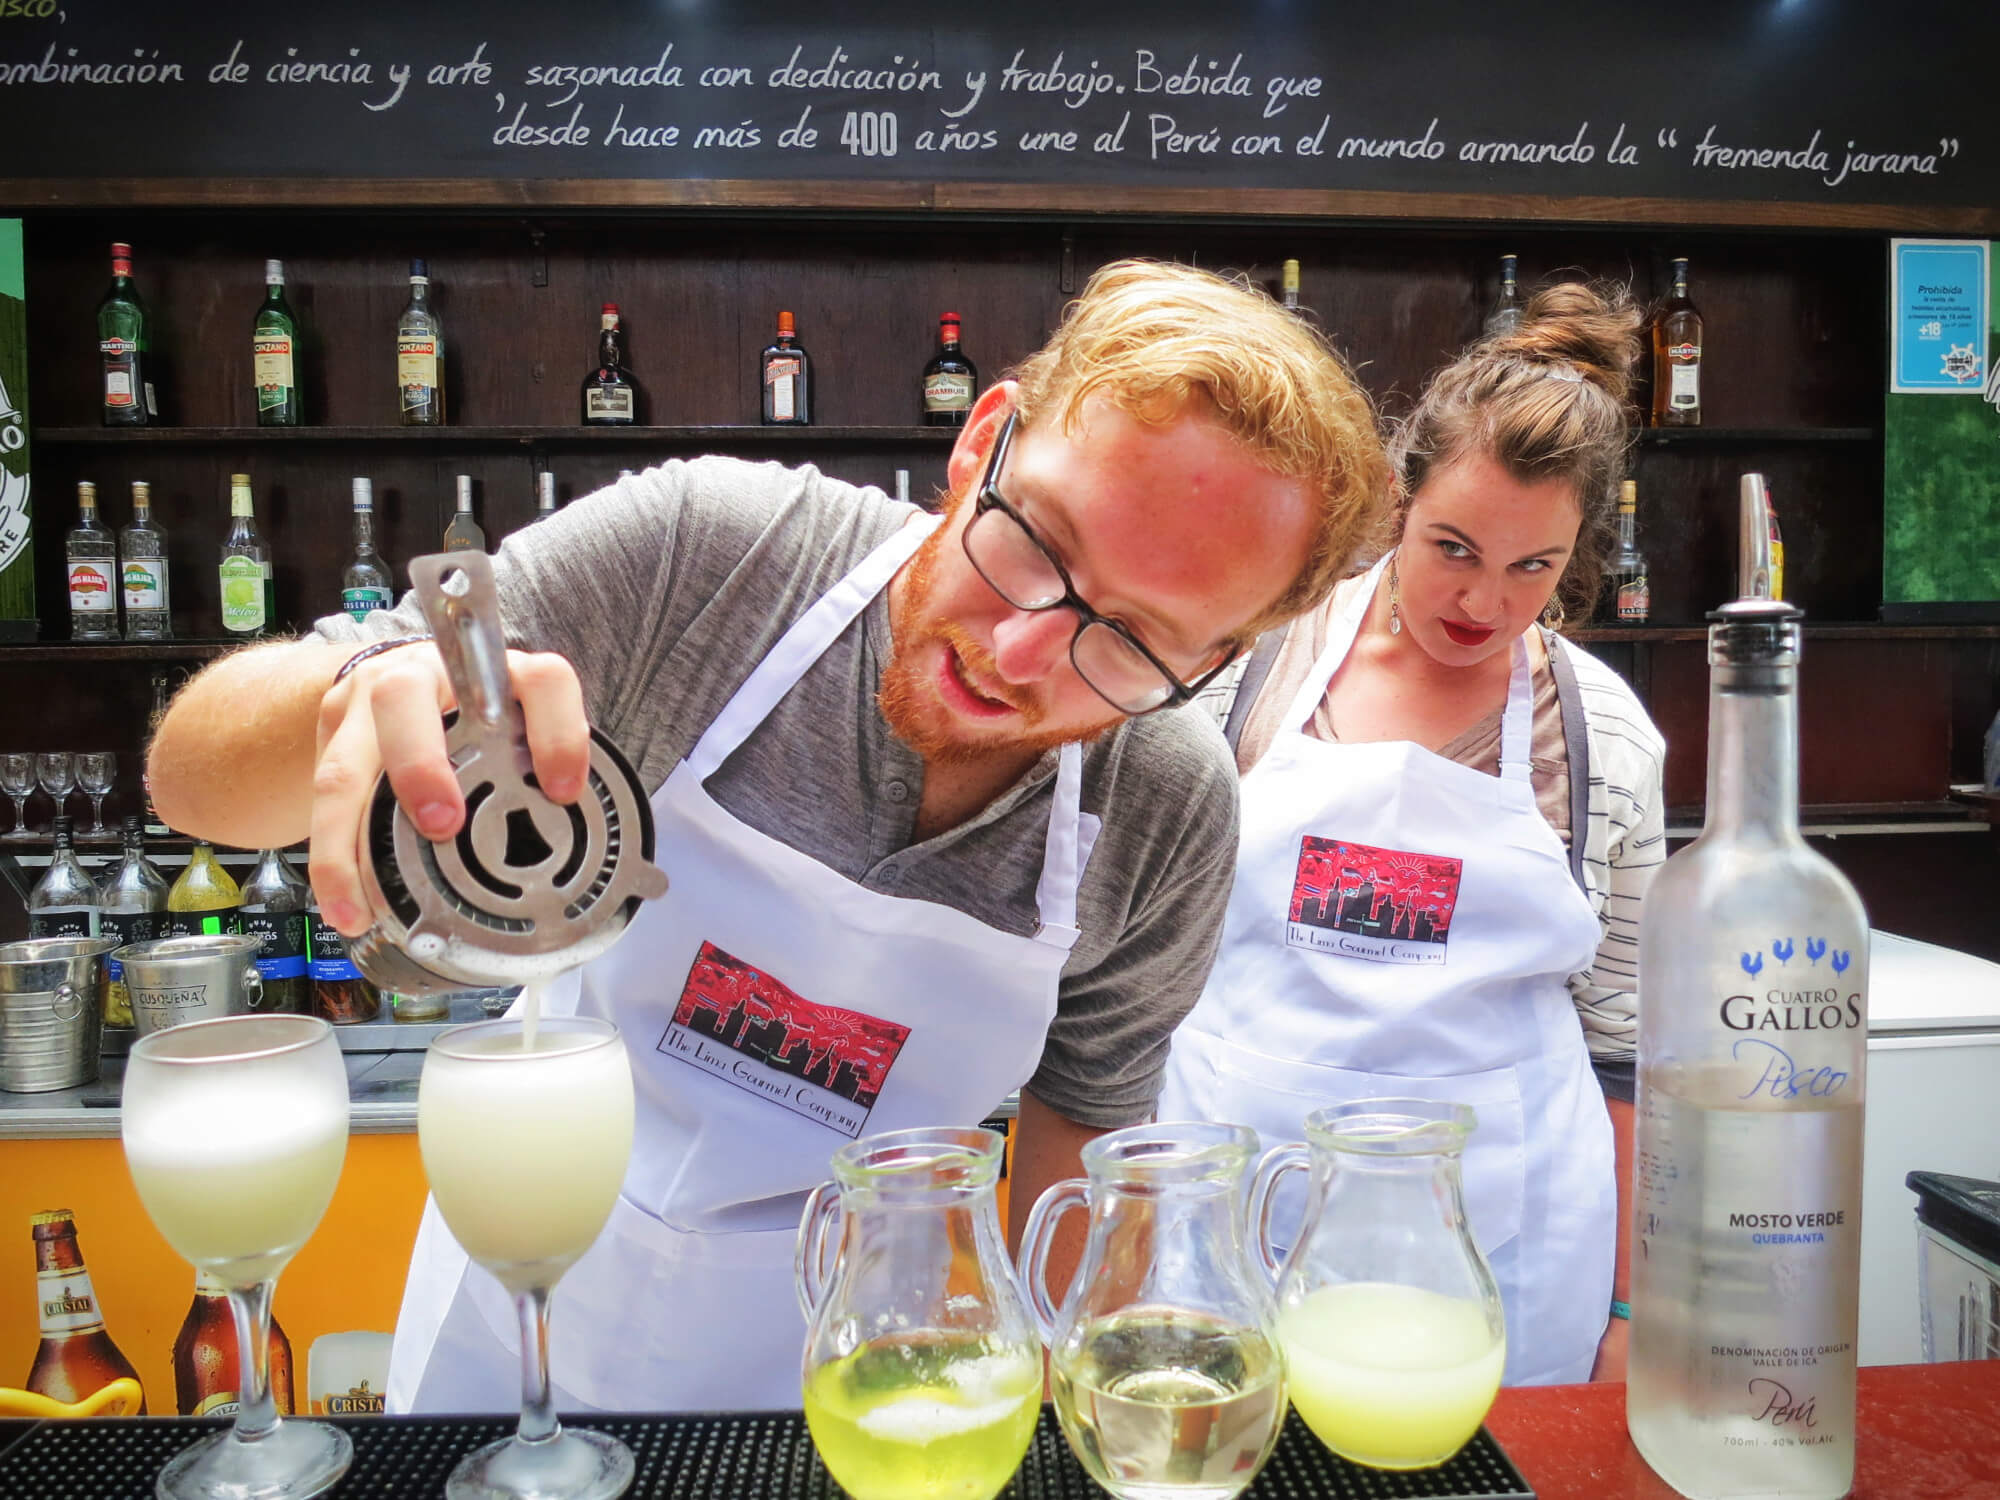 Carefully making a Pisco Sour in our cooking class with Lima Gourmet in Lima, Peru.